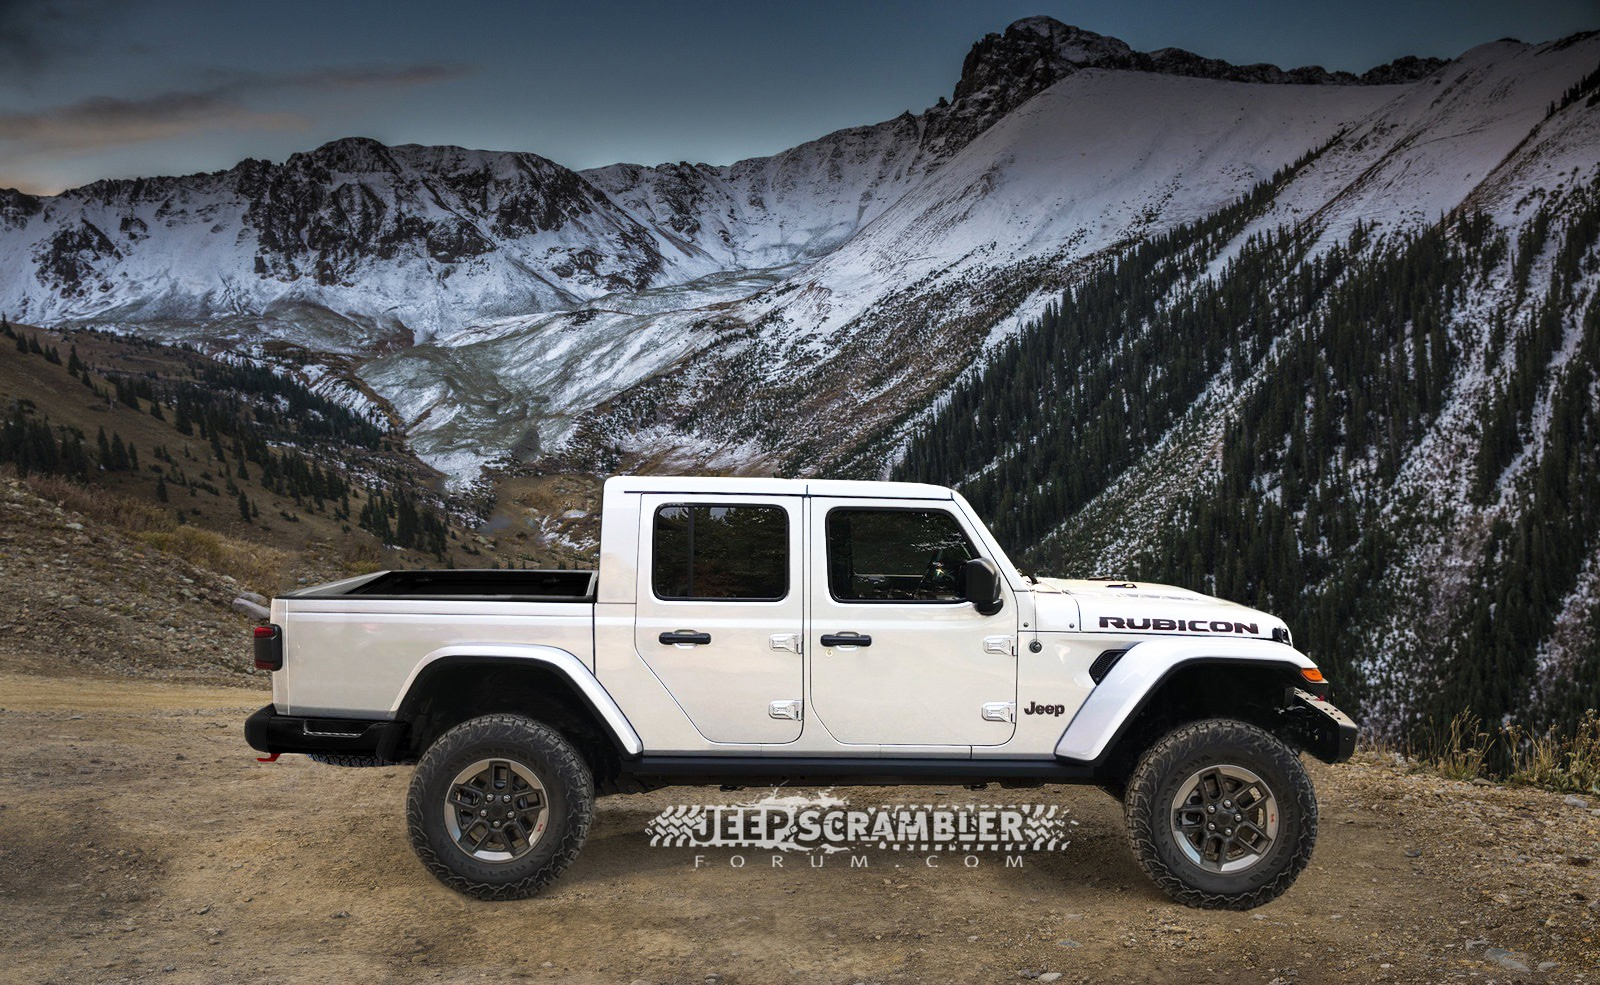 Sunrider Jeep Top >> 2020 Jeep Scrambler Pickup Rendered With Hard Top, Soft Top - autoevolution